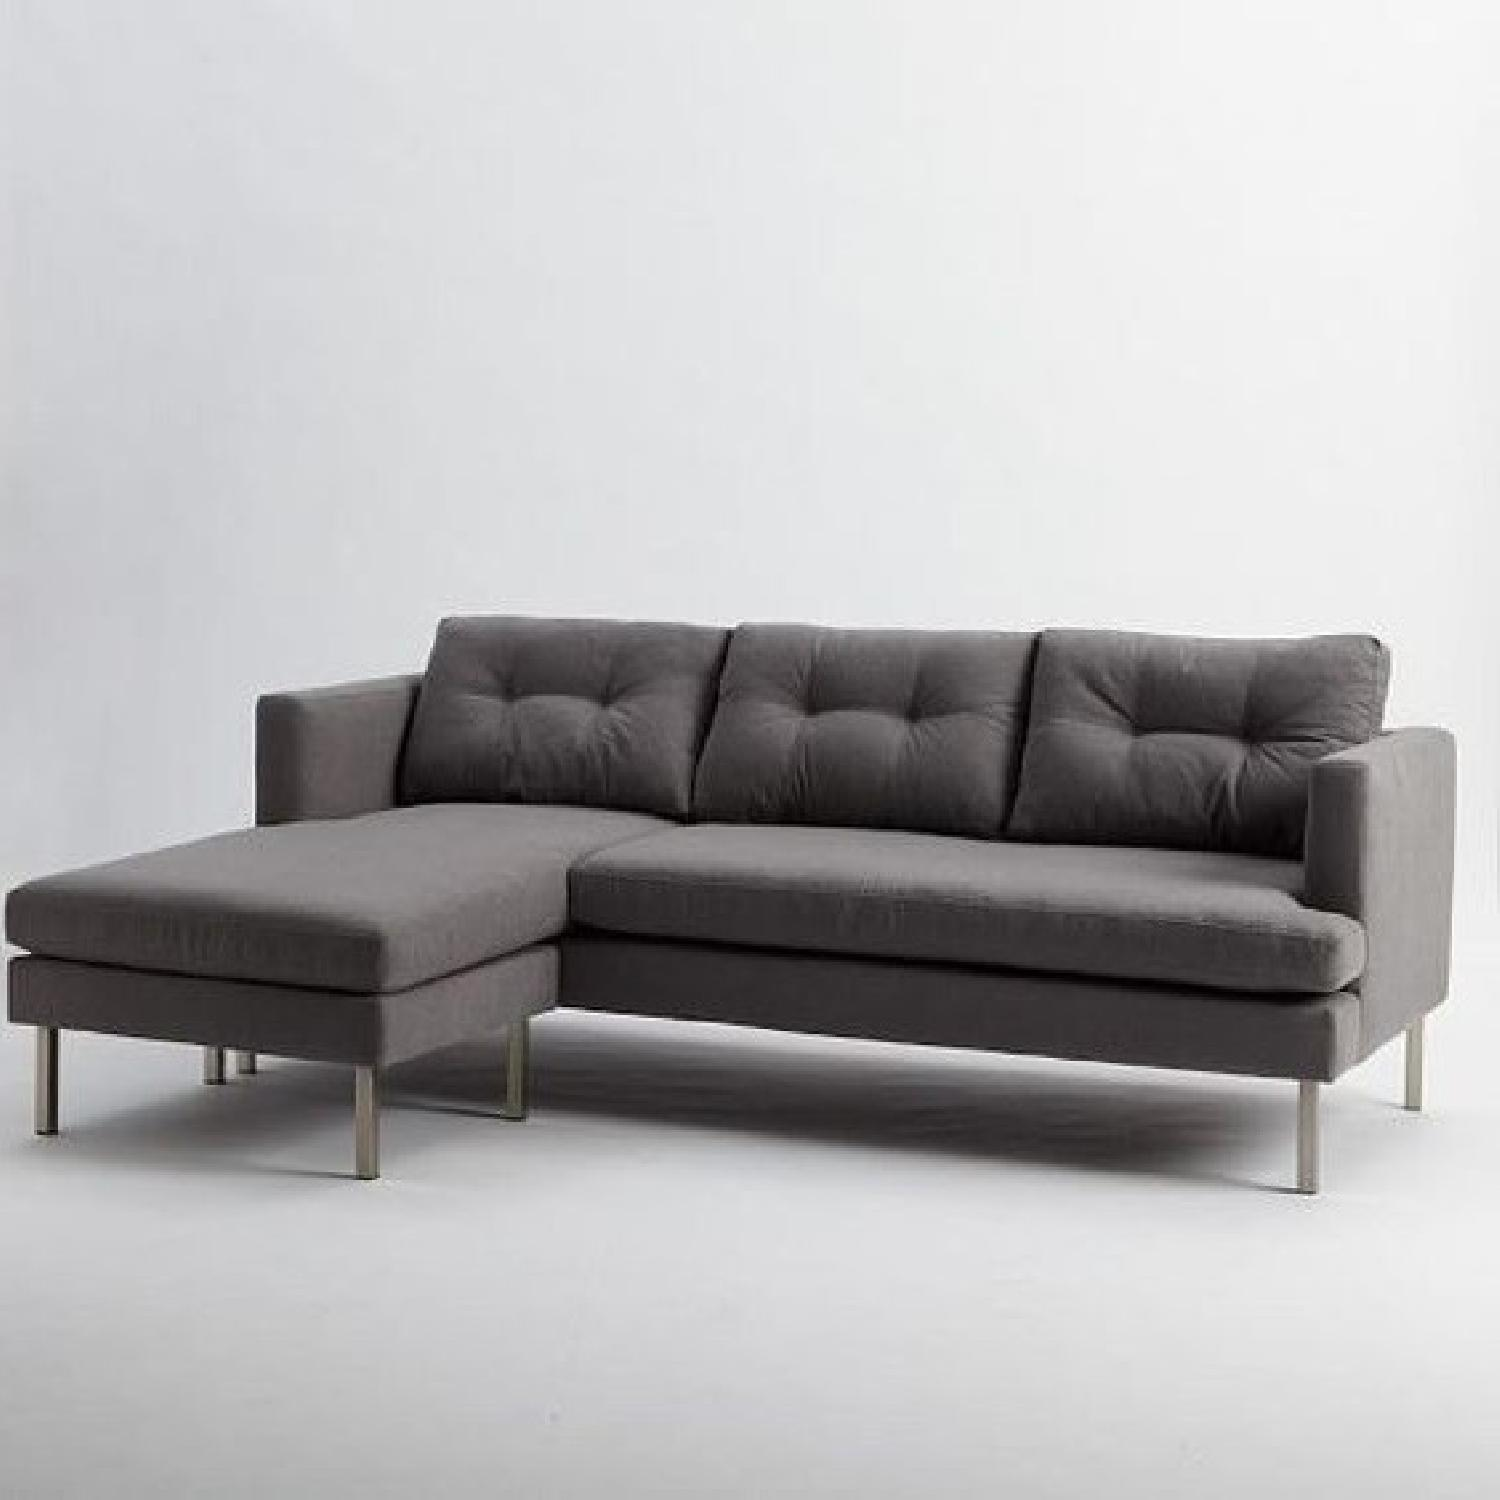 West Elm Sectional Sofa w/ Chaise Lounge-4